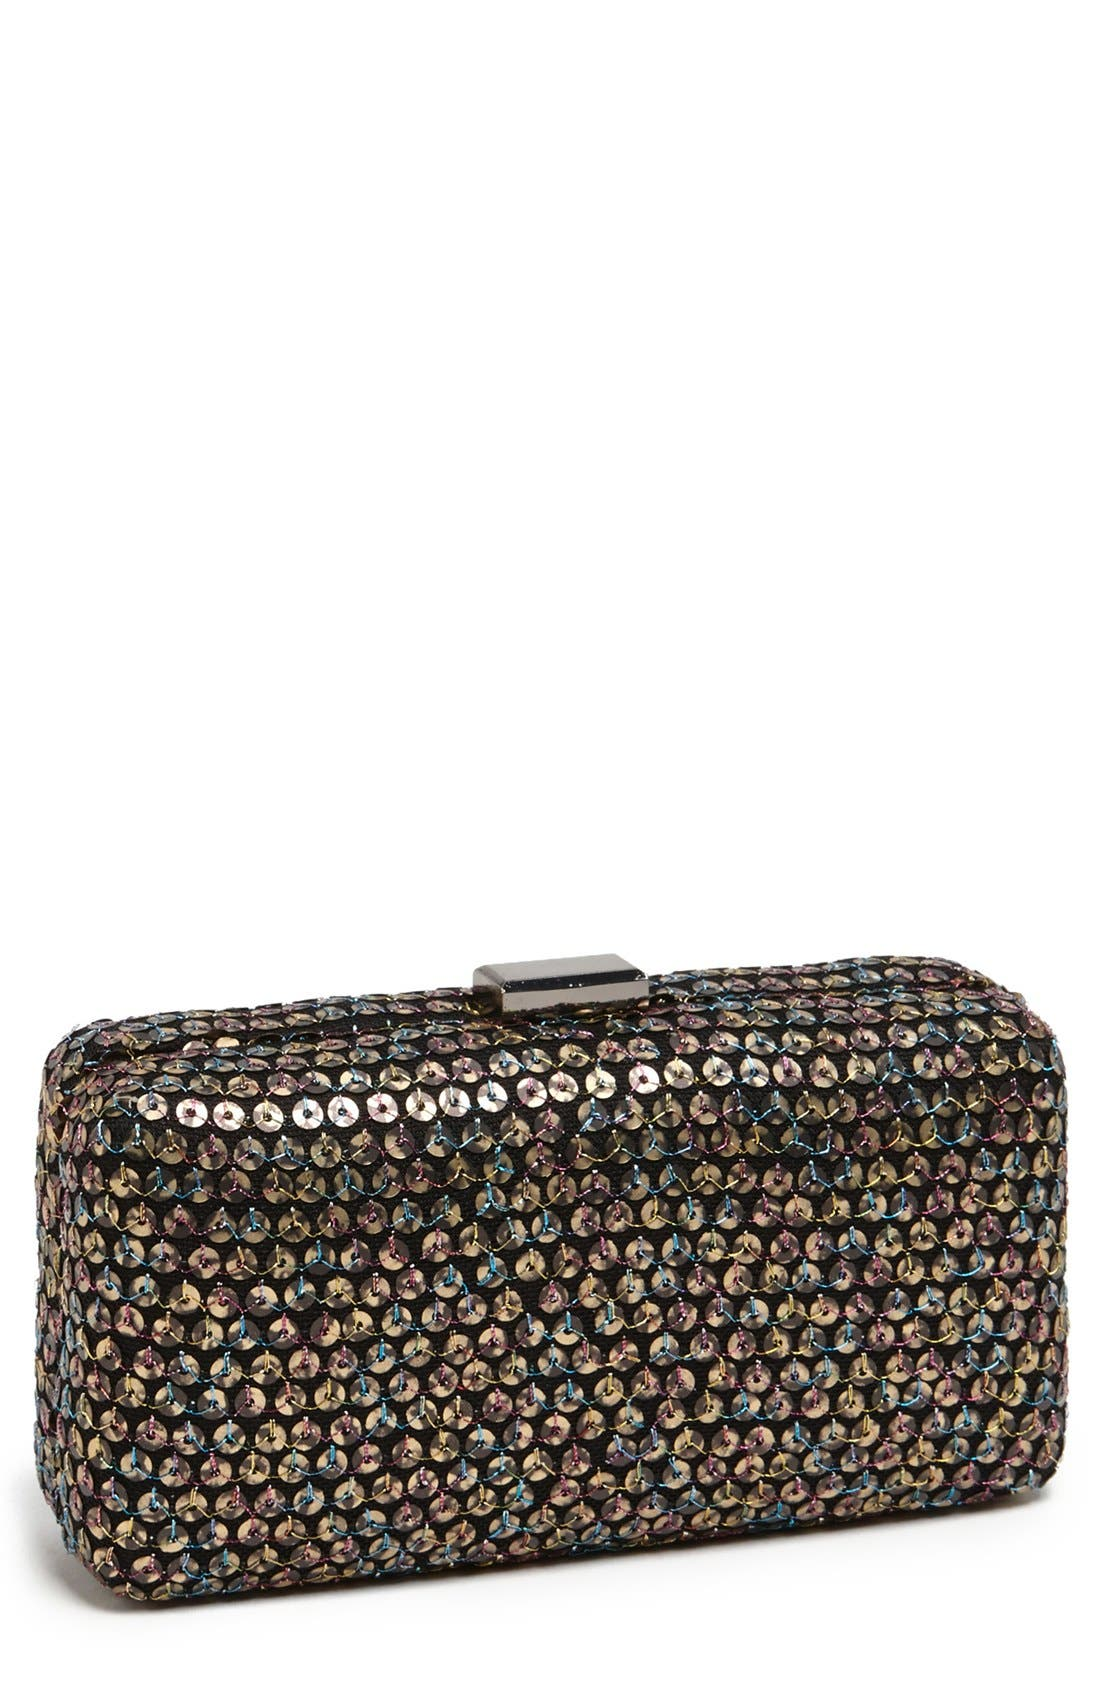 Main Image - Betsey Johnson Sequin Clutch